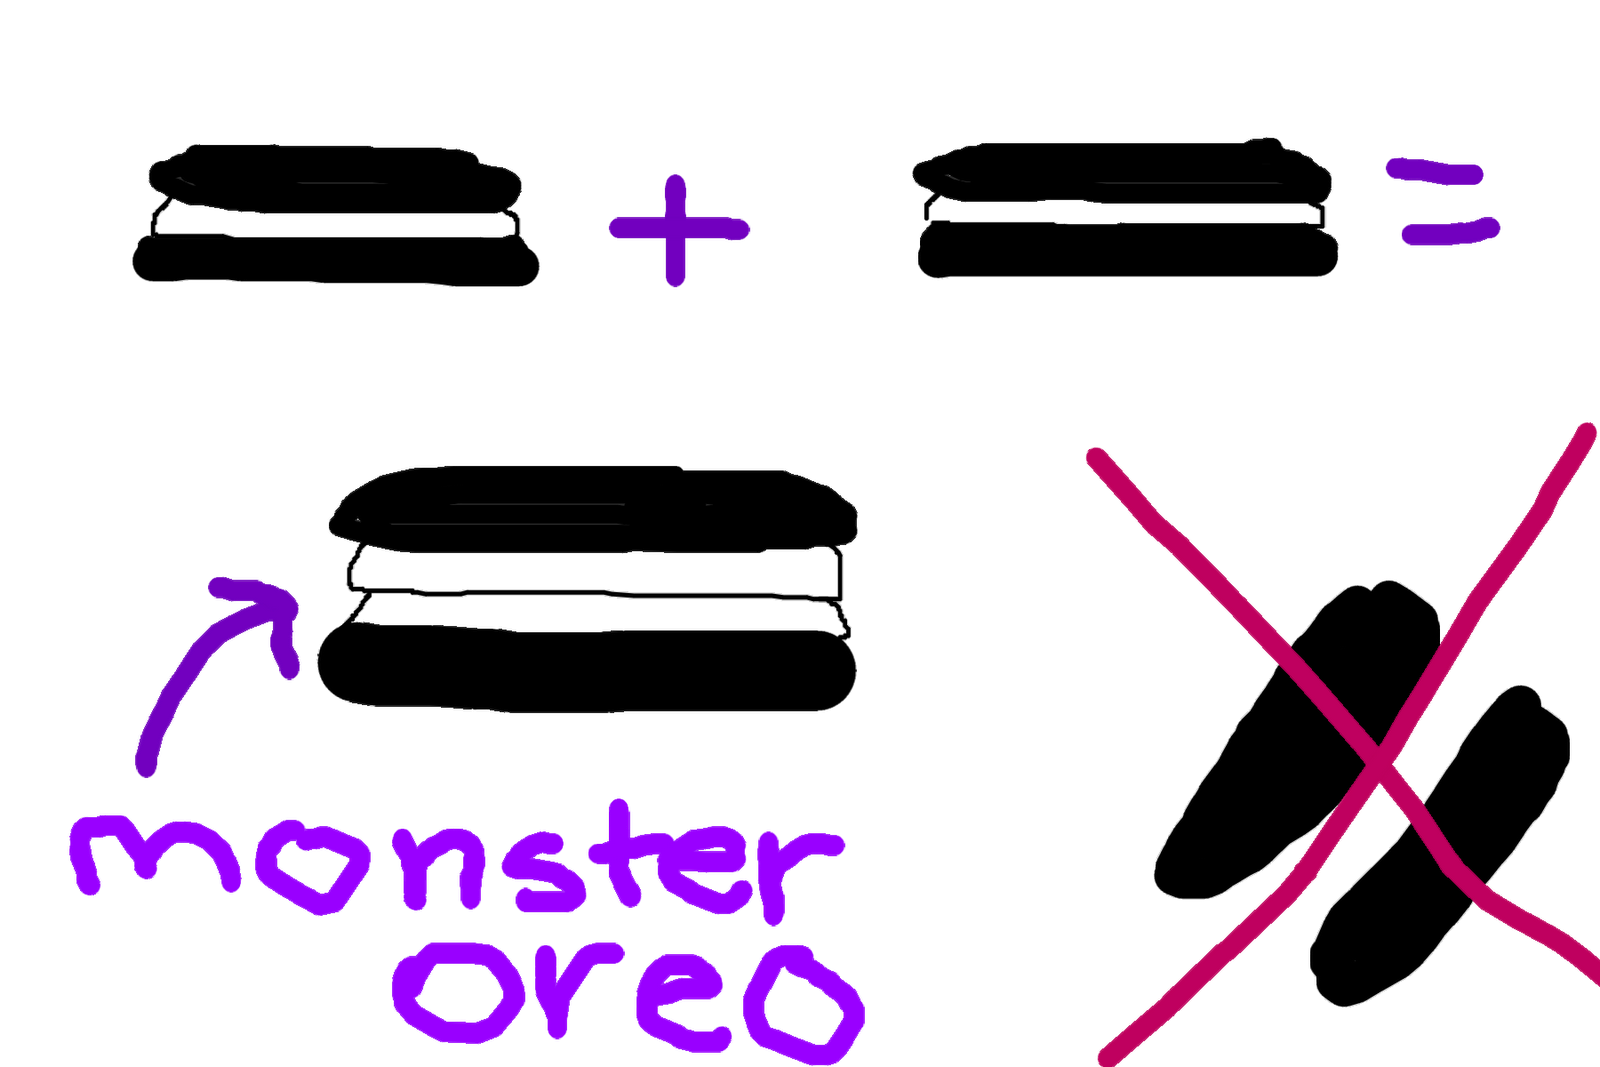 Drizzled in awesomeness controversy. Oreo clipart double stuff